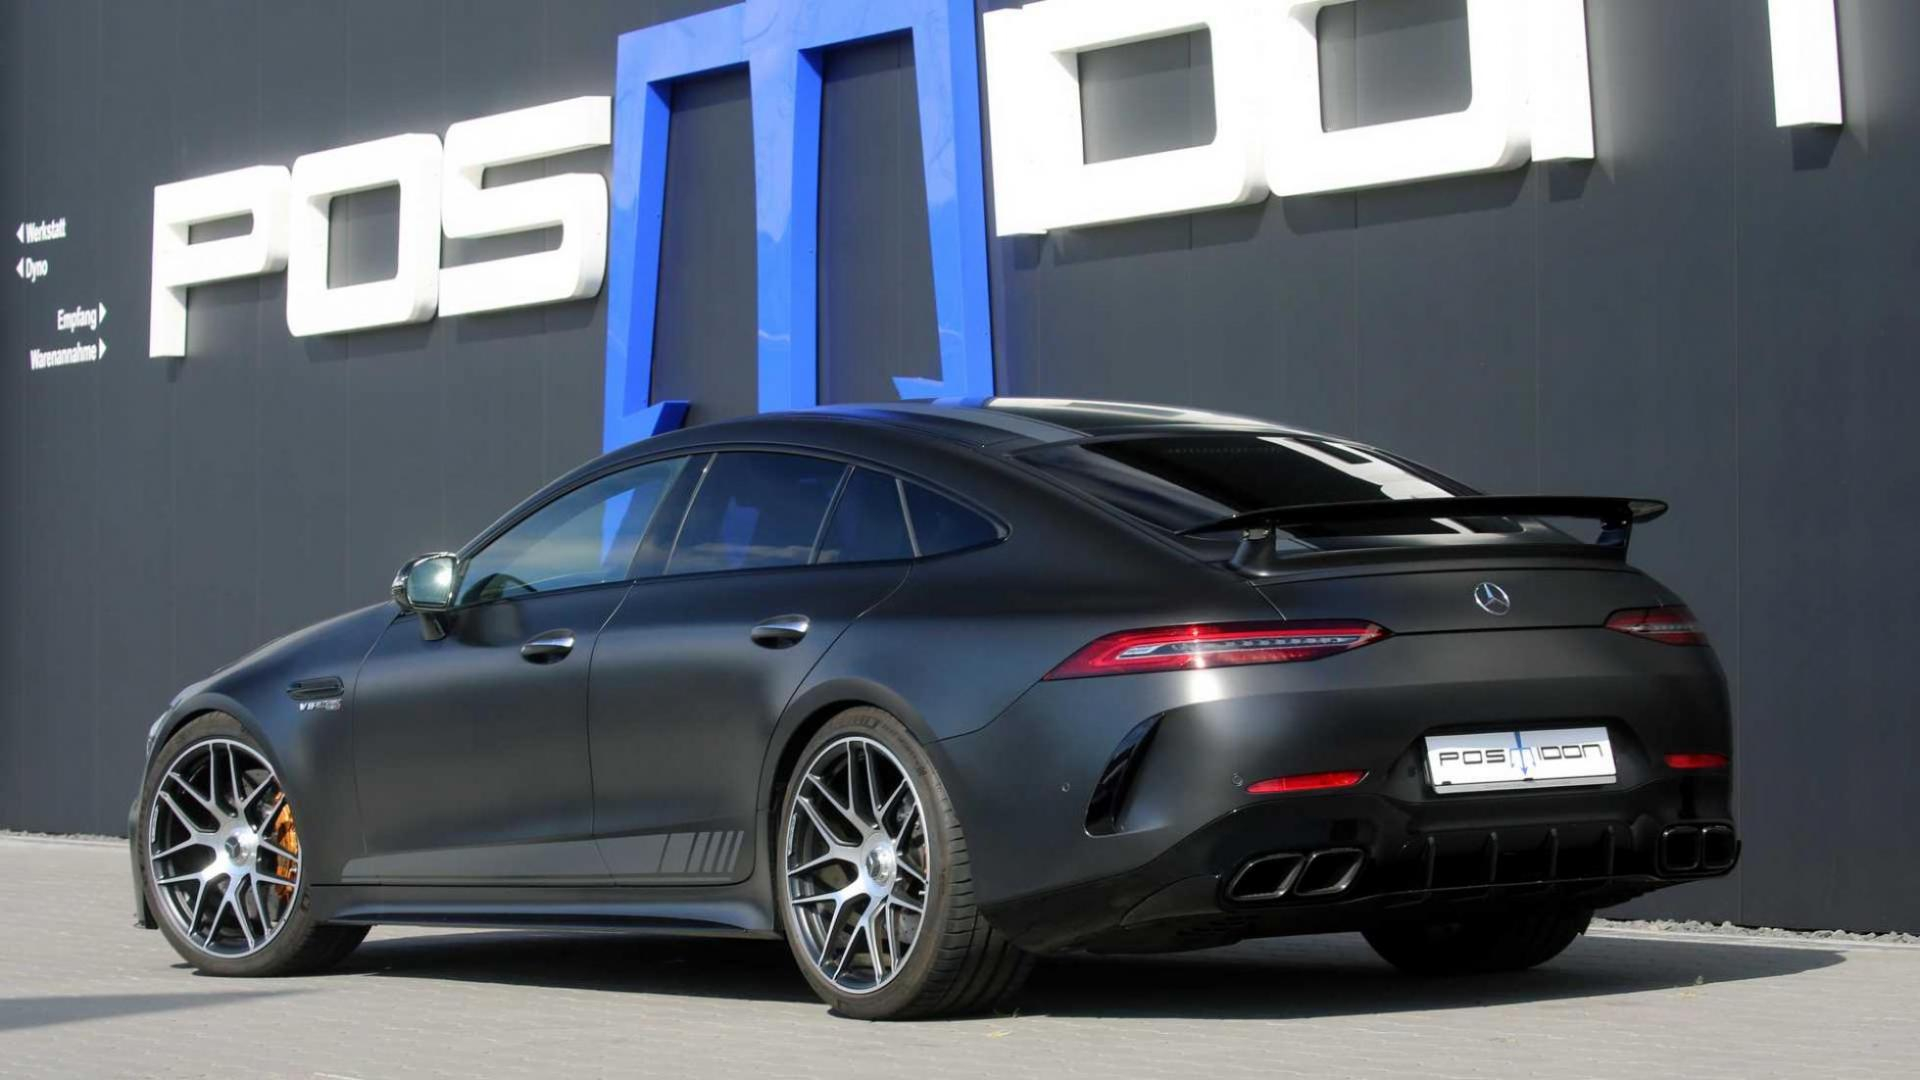 Mercedes AMG-GT Posaidon RS achter